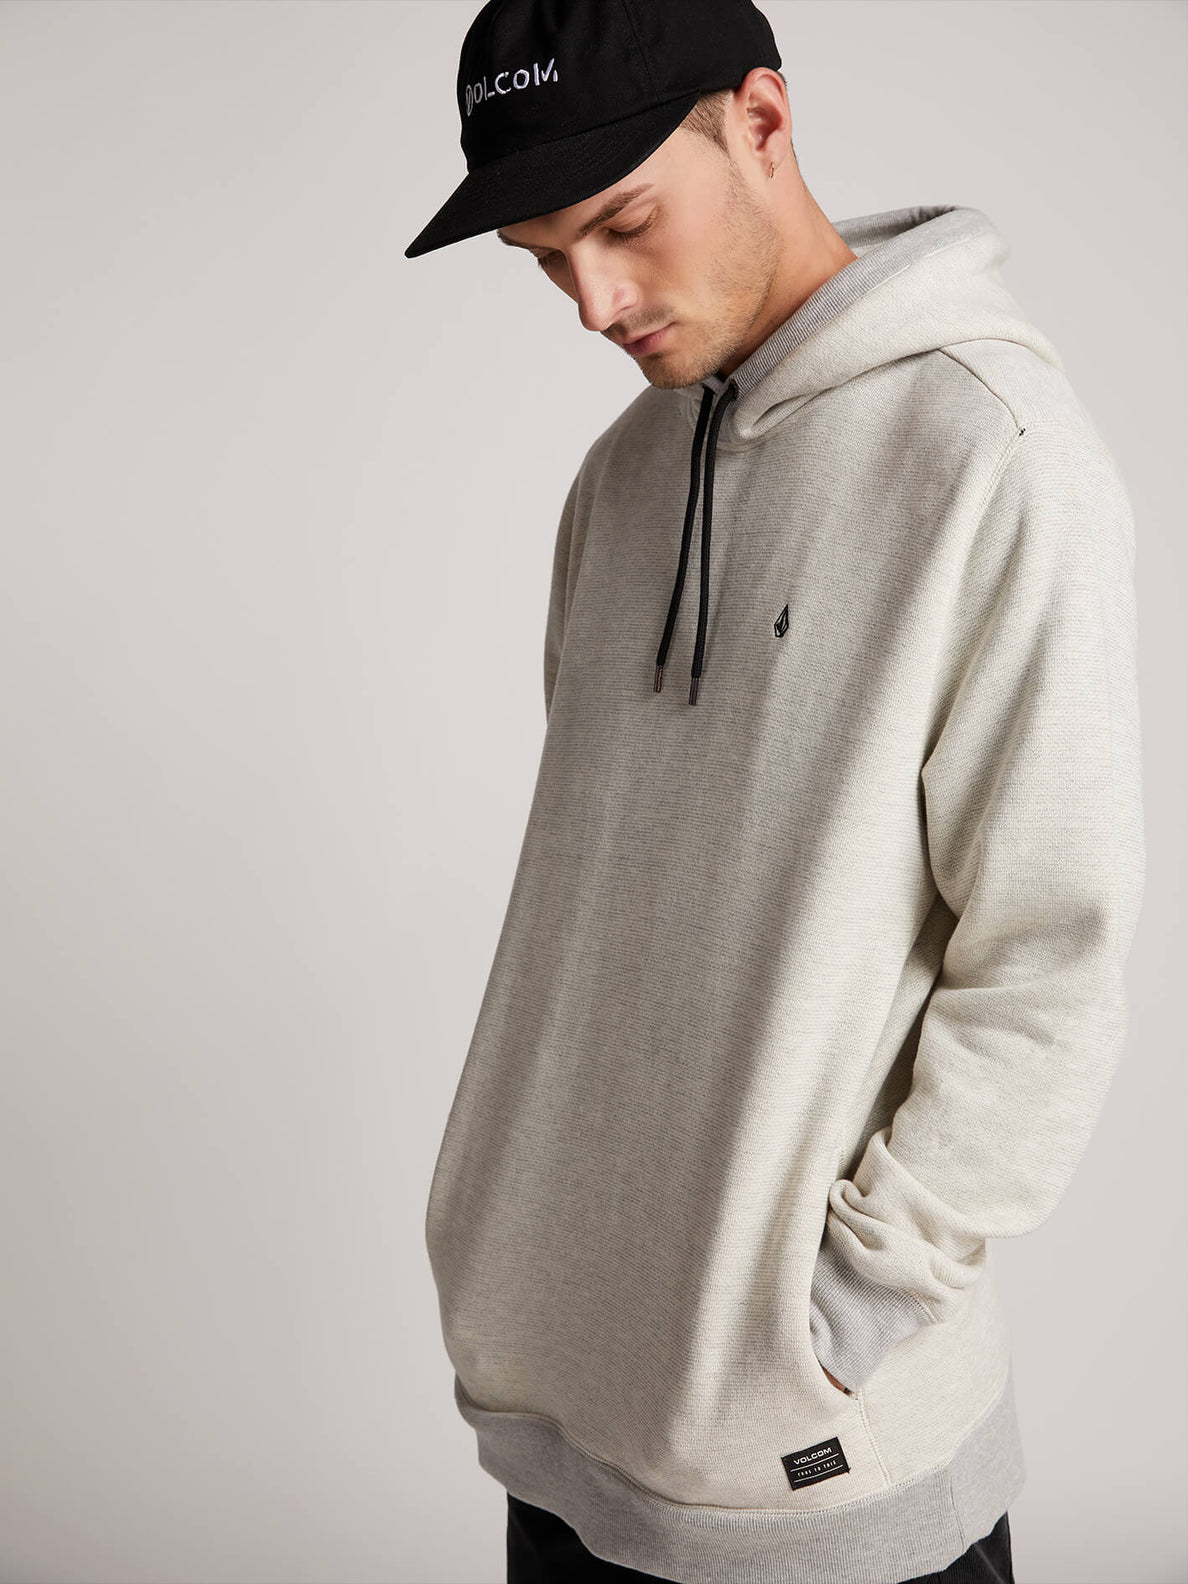 Coder Pullover Hoodie In Grey, Second Alternate View